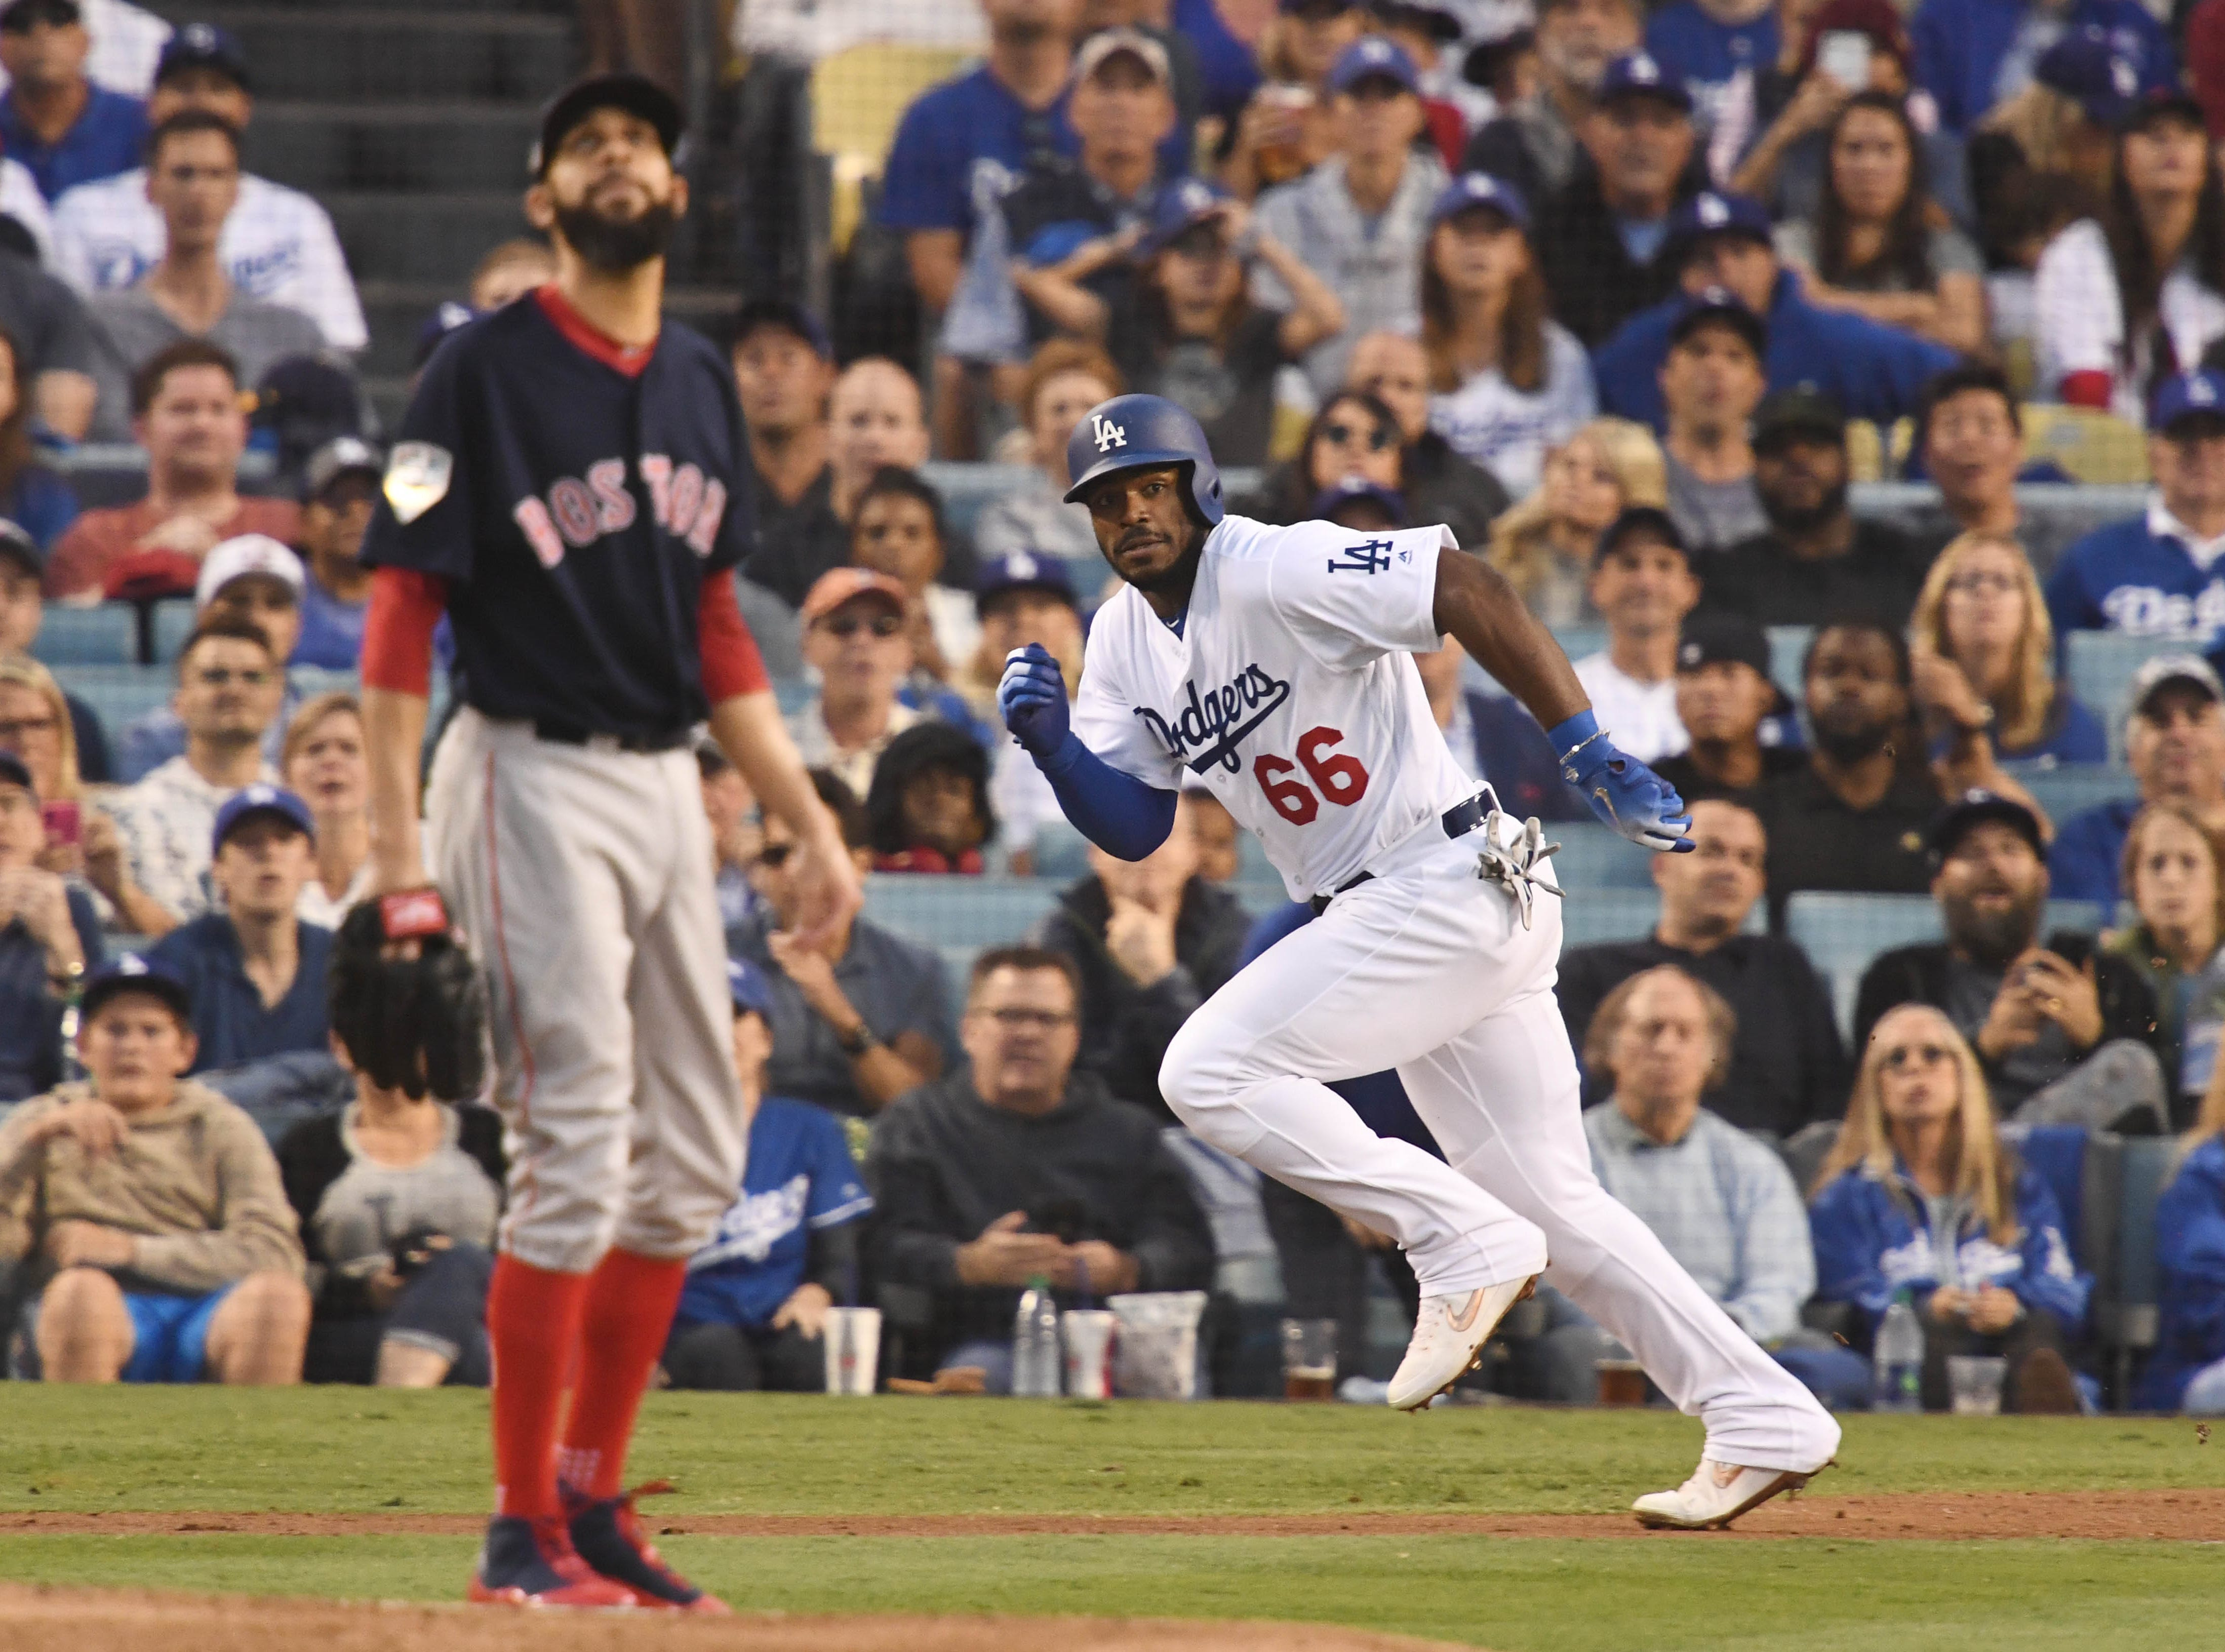 Game 5 at Dodger Stadium: Yasiel Puig hits   a single in the second inning.